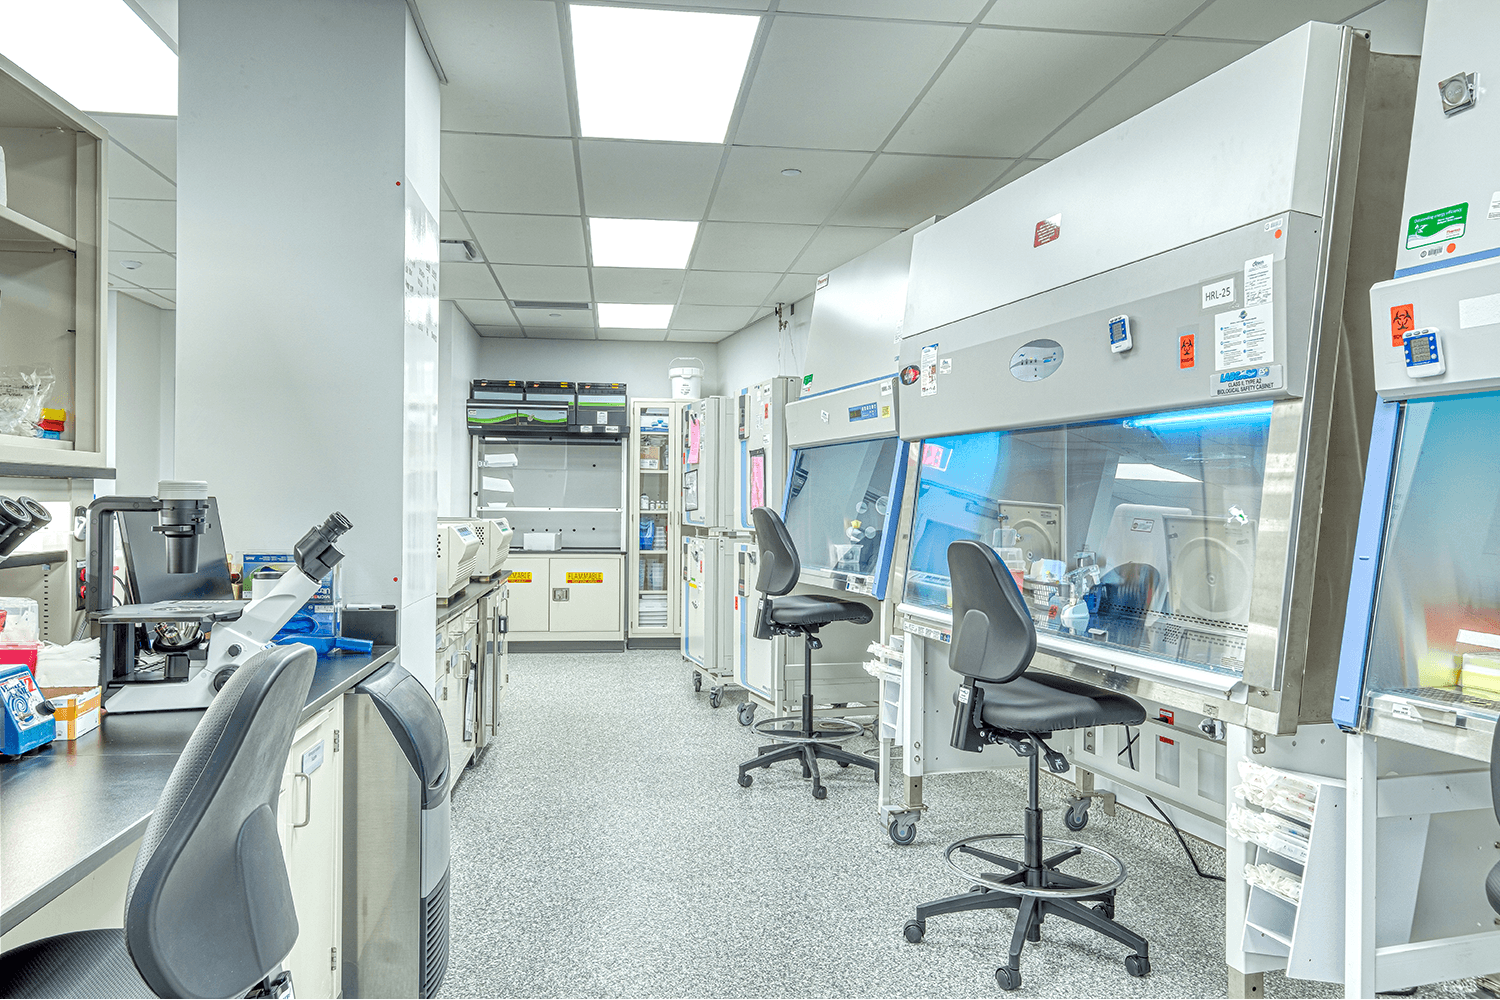 wet lab workspace with desk chairs and lab equipment